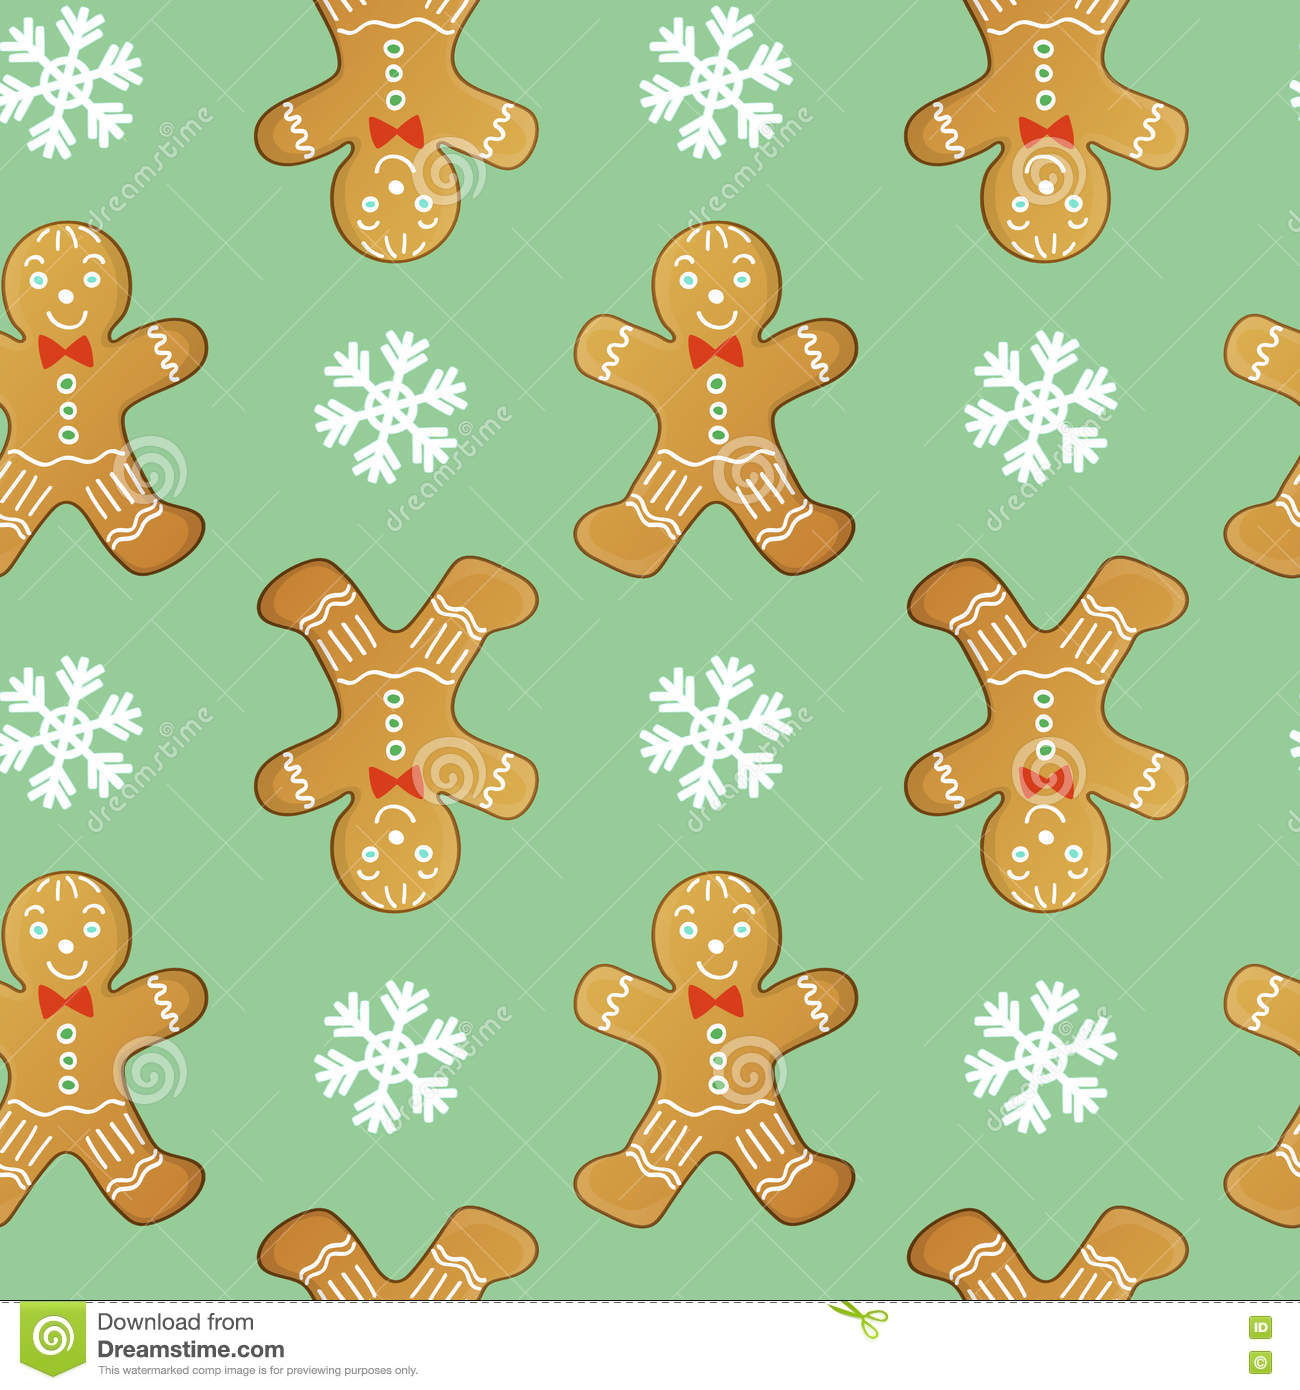 Gingerbread men seamless vector pattern